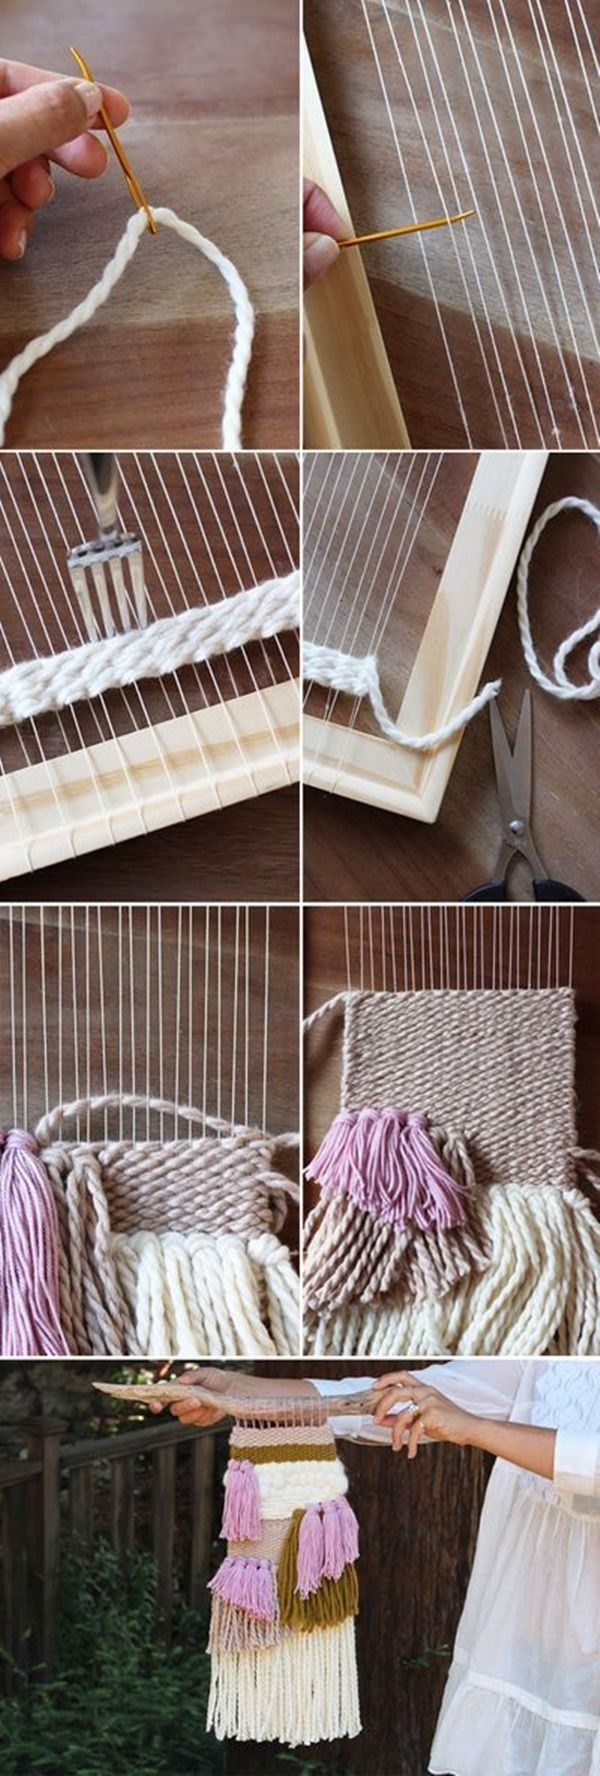 Addictive weaving Tutorials to try this summer (32)